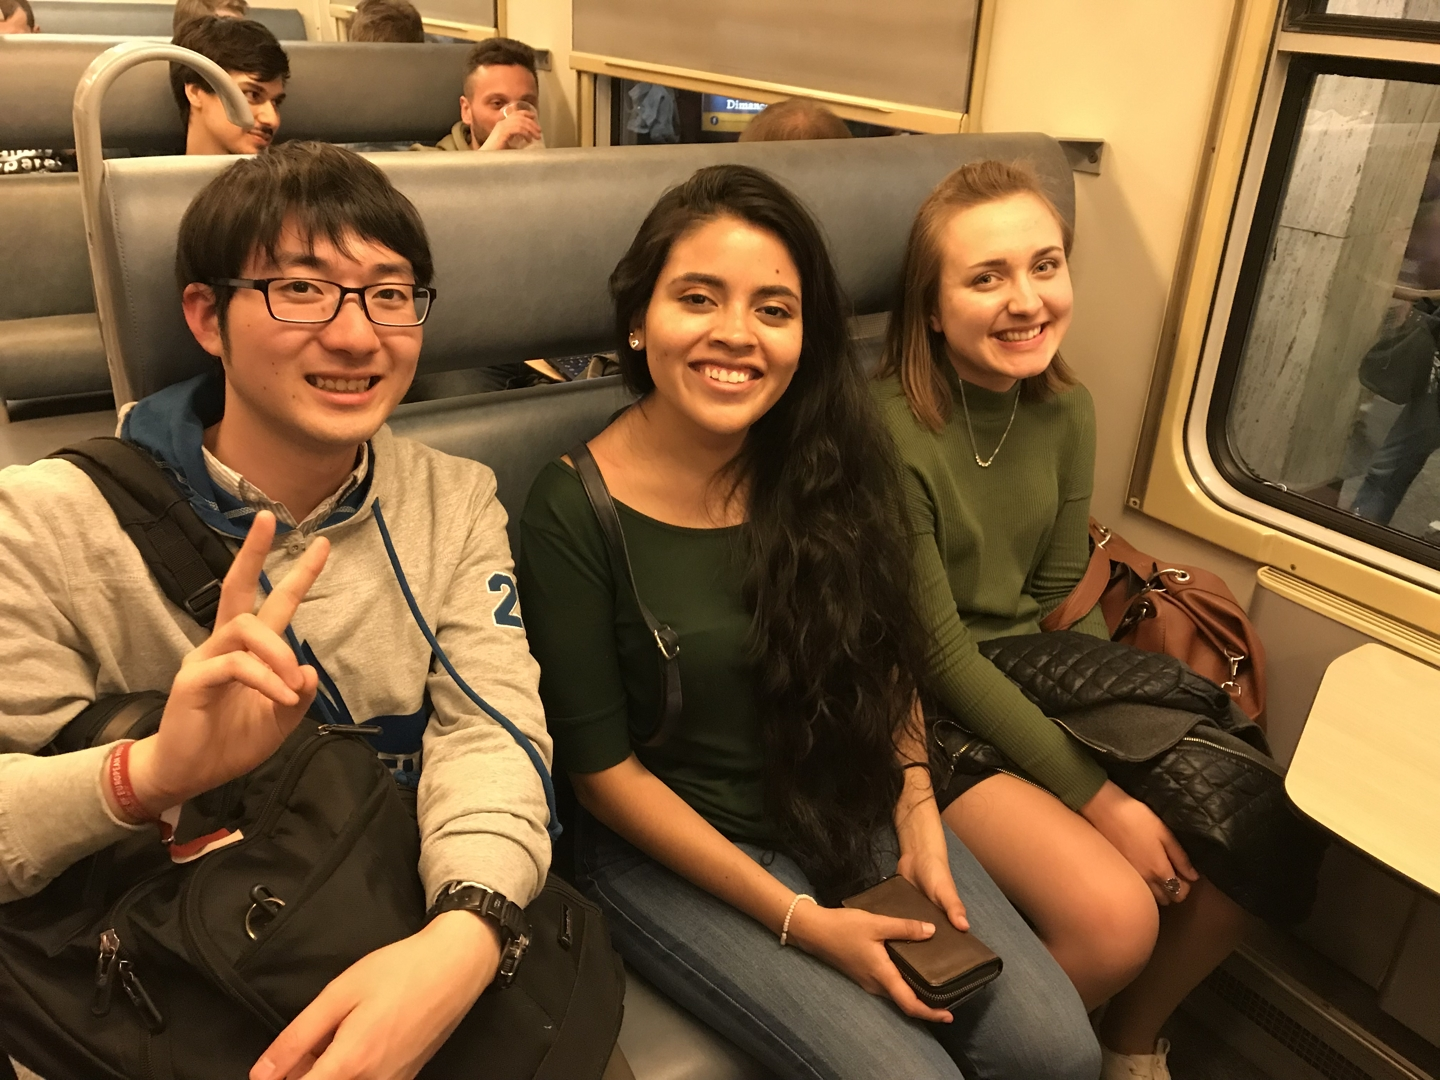 Three students in the subway of Brussels